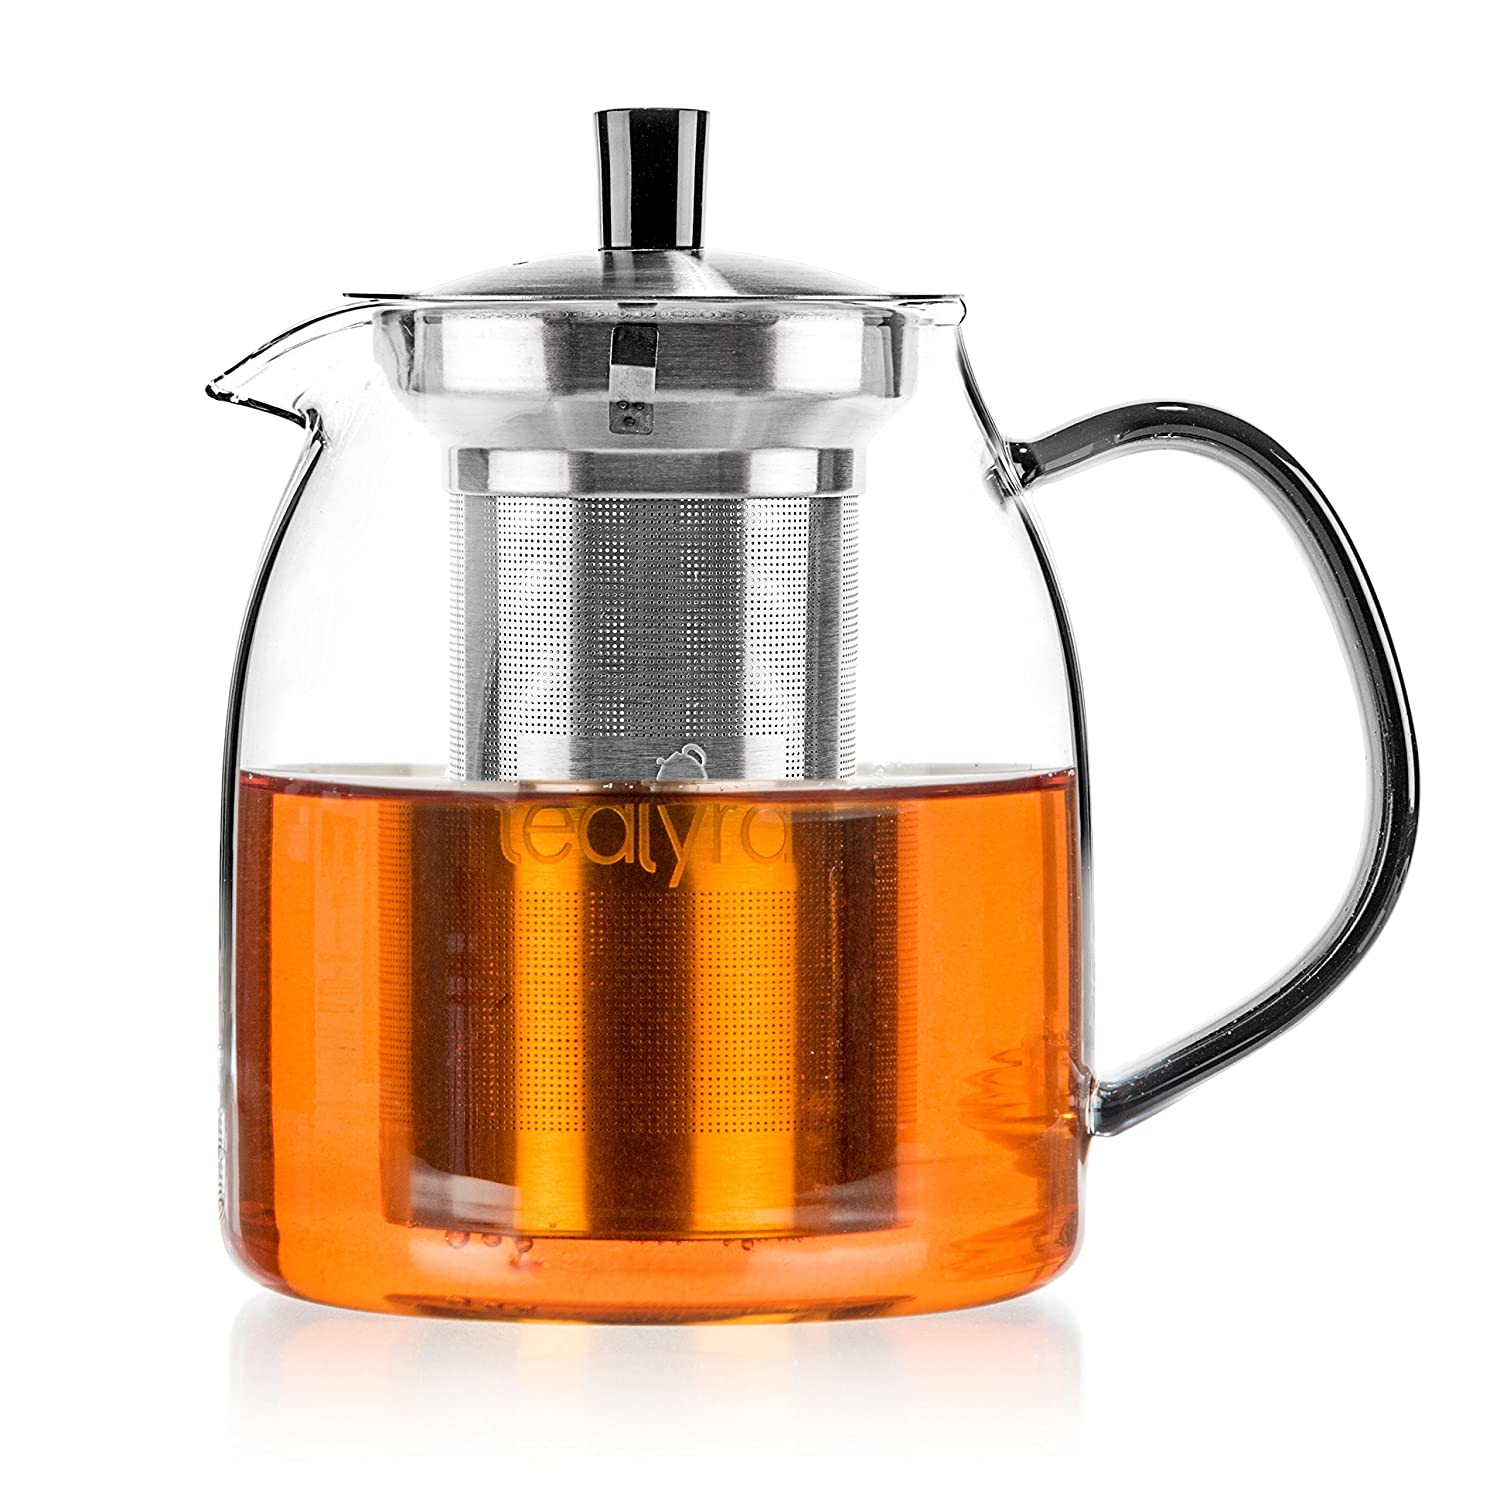 Vega TEAPOT 900ml - Stove-TOP Safe - Large Borosilicate Glass Teapot - Kettle - w/Removable Stainless-Steel Infuser - Best for Loose Leaf and Blooming Tea - Makes 3-4 Cups by Tealyra COMINHKPR80445